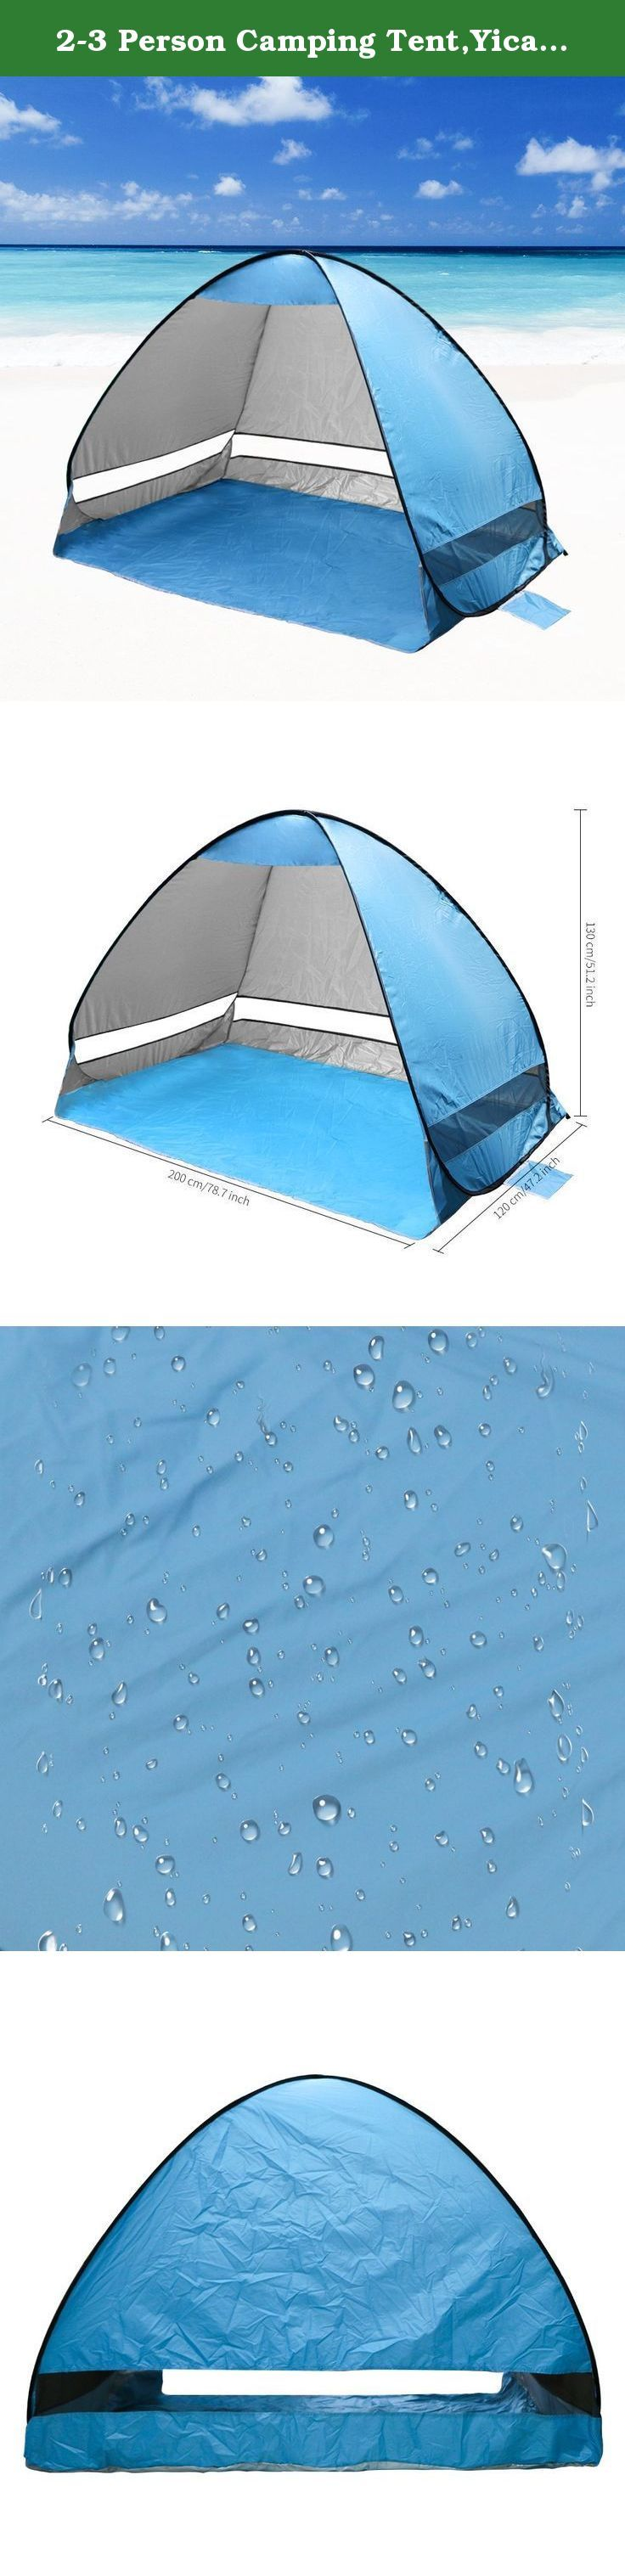 """2-3 Person Camping Tent,Yica Outdoors Pop Up Lightweight Beach Canopy Tent,UV 50+ Protection,Automatic Family Sport Sun Shelter Sunshade,Kids Play Tent,for Camping Fishing Hiking Picnicing. The Yica Quick Draw 78.7"""" x 47.3""""x 51"""" Sun Shelter is perfect for the beach, backyard or any other place you need get some shade from the sun or protection from the elements. With the integrated pole system, the poles are built into the tent, eliminating the difficulty associated with traditional…"""